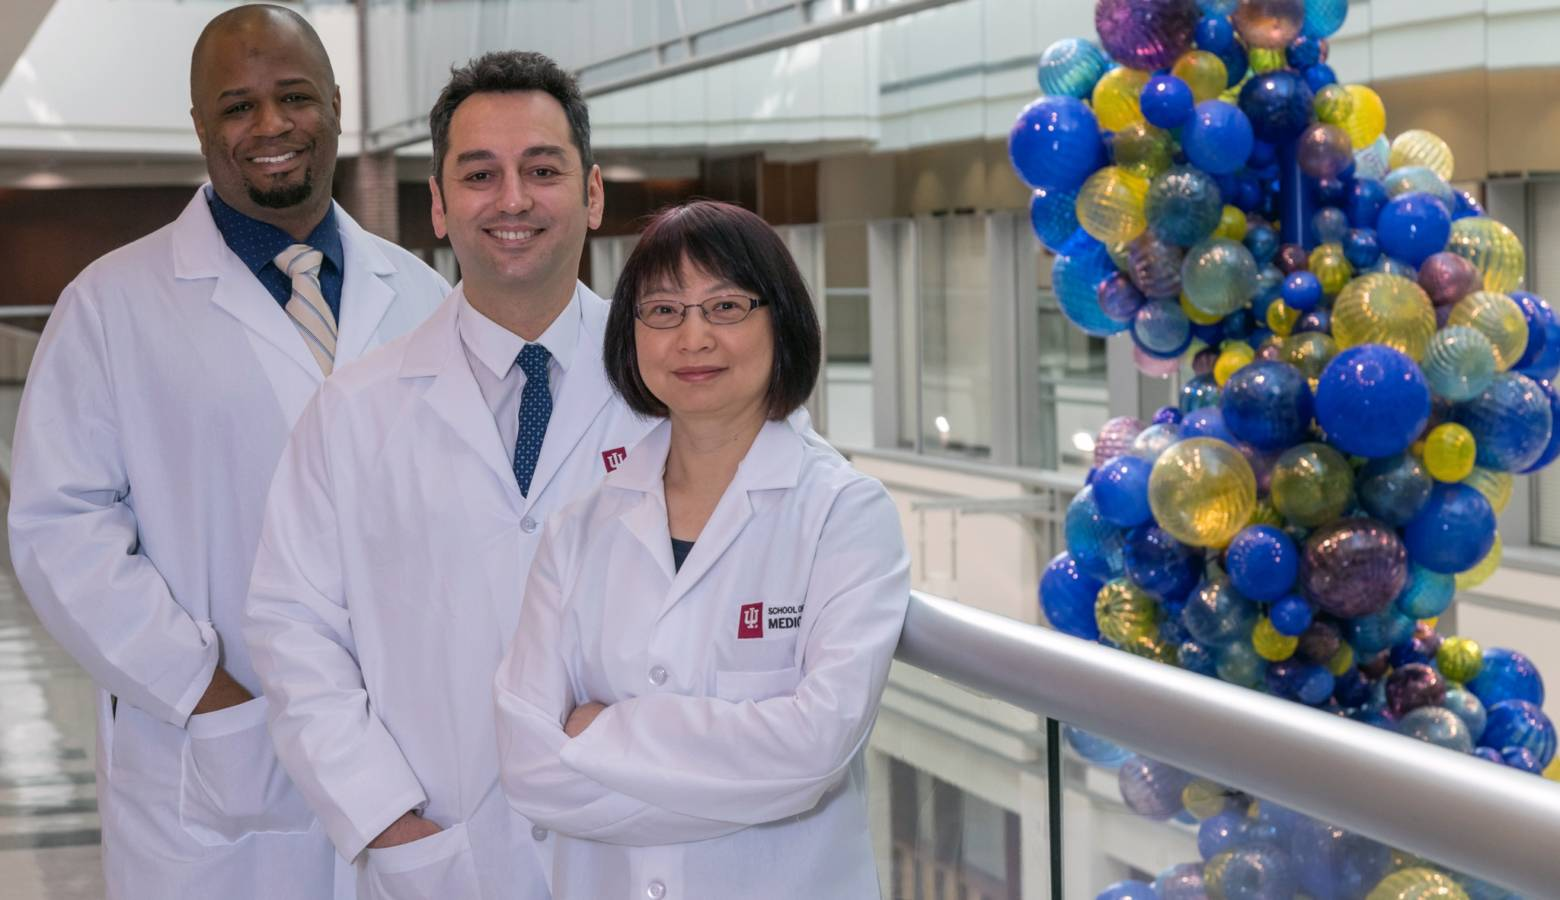 Indiana University School of Medicine Dr. Burcin Ekser (middle) and some of the team of researchers who work on organ transplant technology. (Photo courtesy Indiana University School of Medicine)